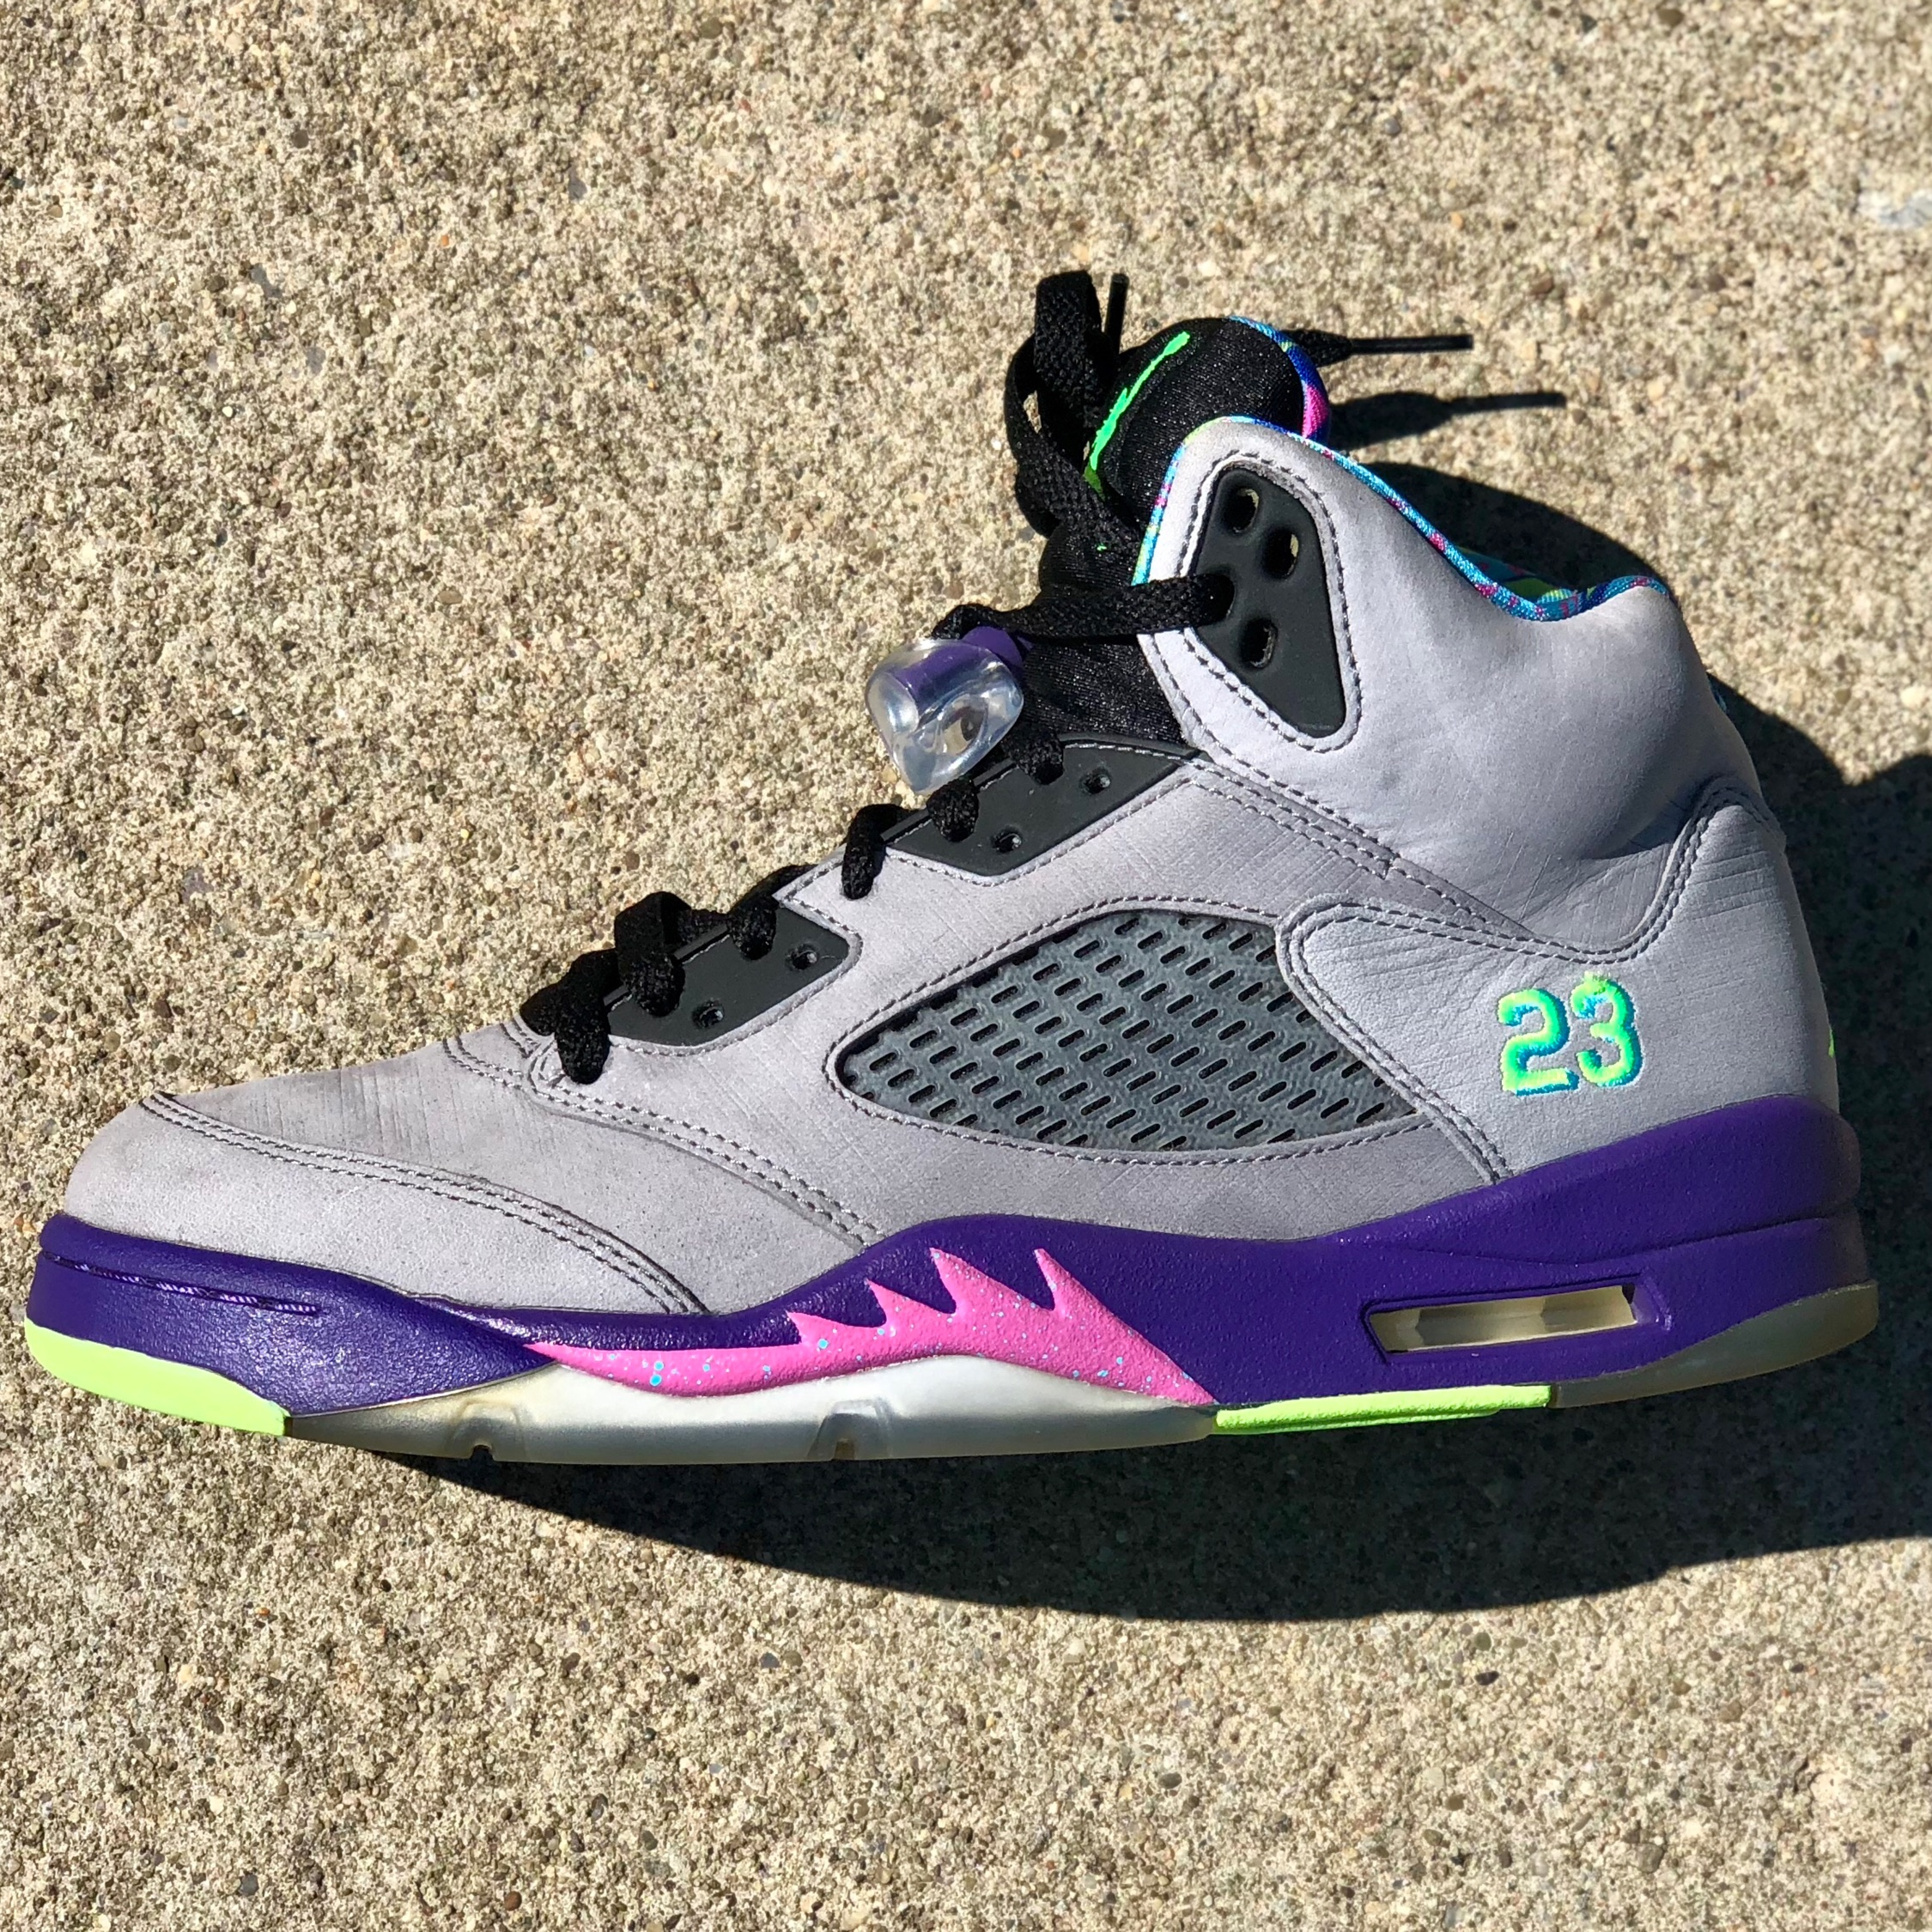 innovative design ee758 fc999 Air Jordan Retro 5 Bel Air Size 8.5 With Box